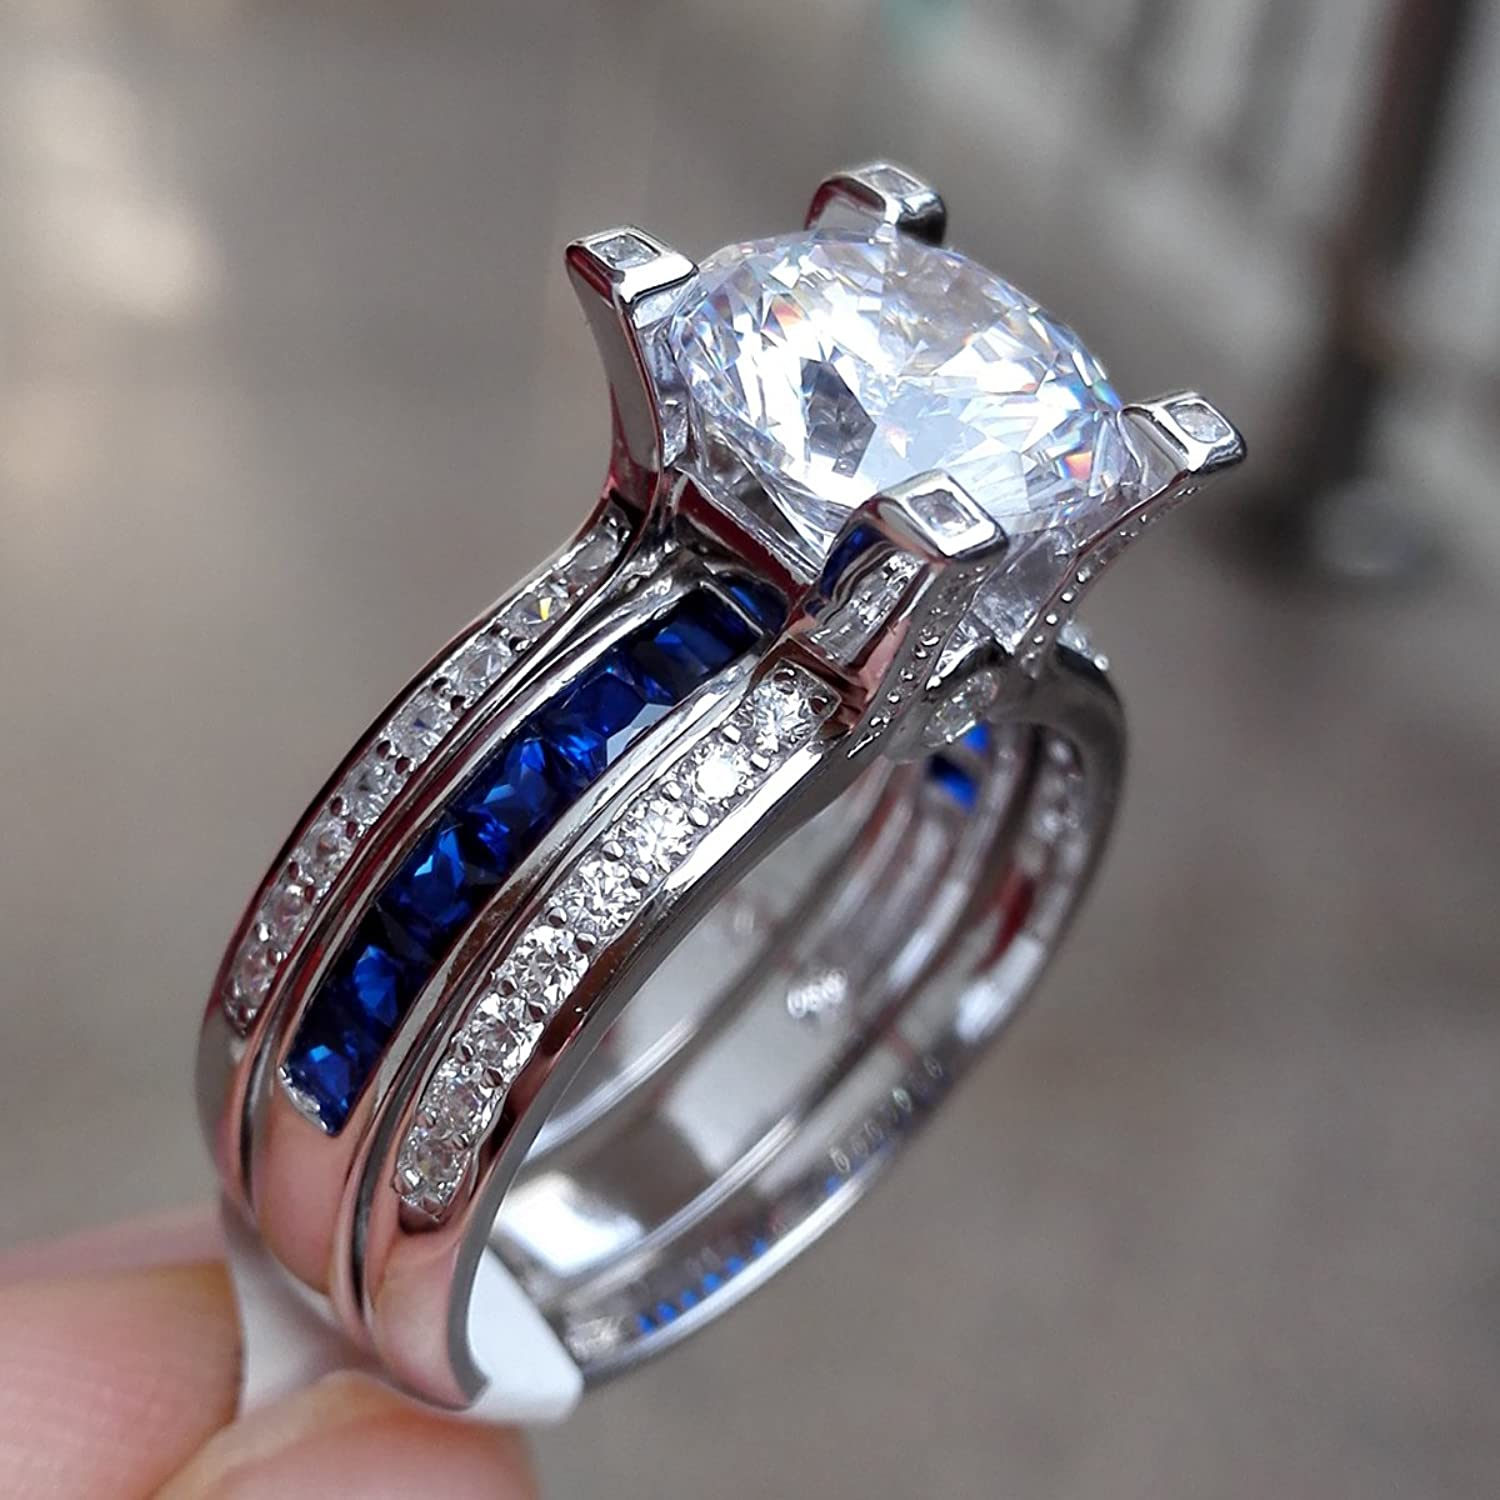 amazoncom newshe jewellery round blue cz 925 sterling silver wedding band engagement ring sets size 5 12 jewelry - Blue Wedding Ring Set